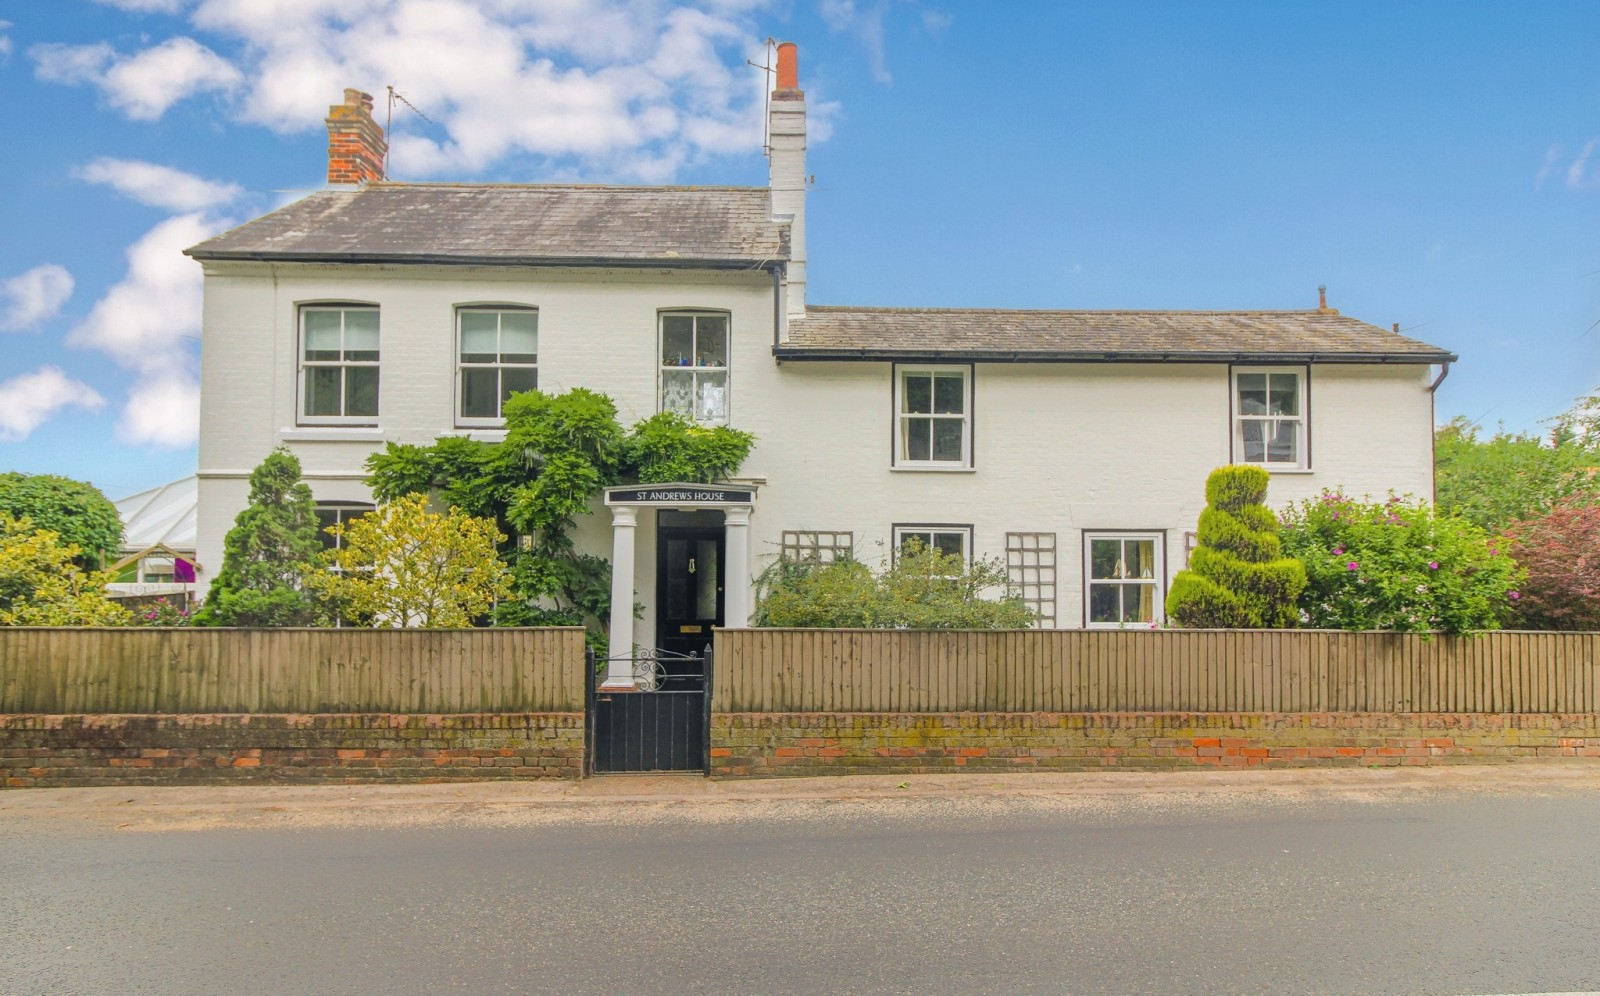 Chapel Road, Fingringhoe, Colchester, Essex, CO5